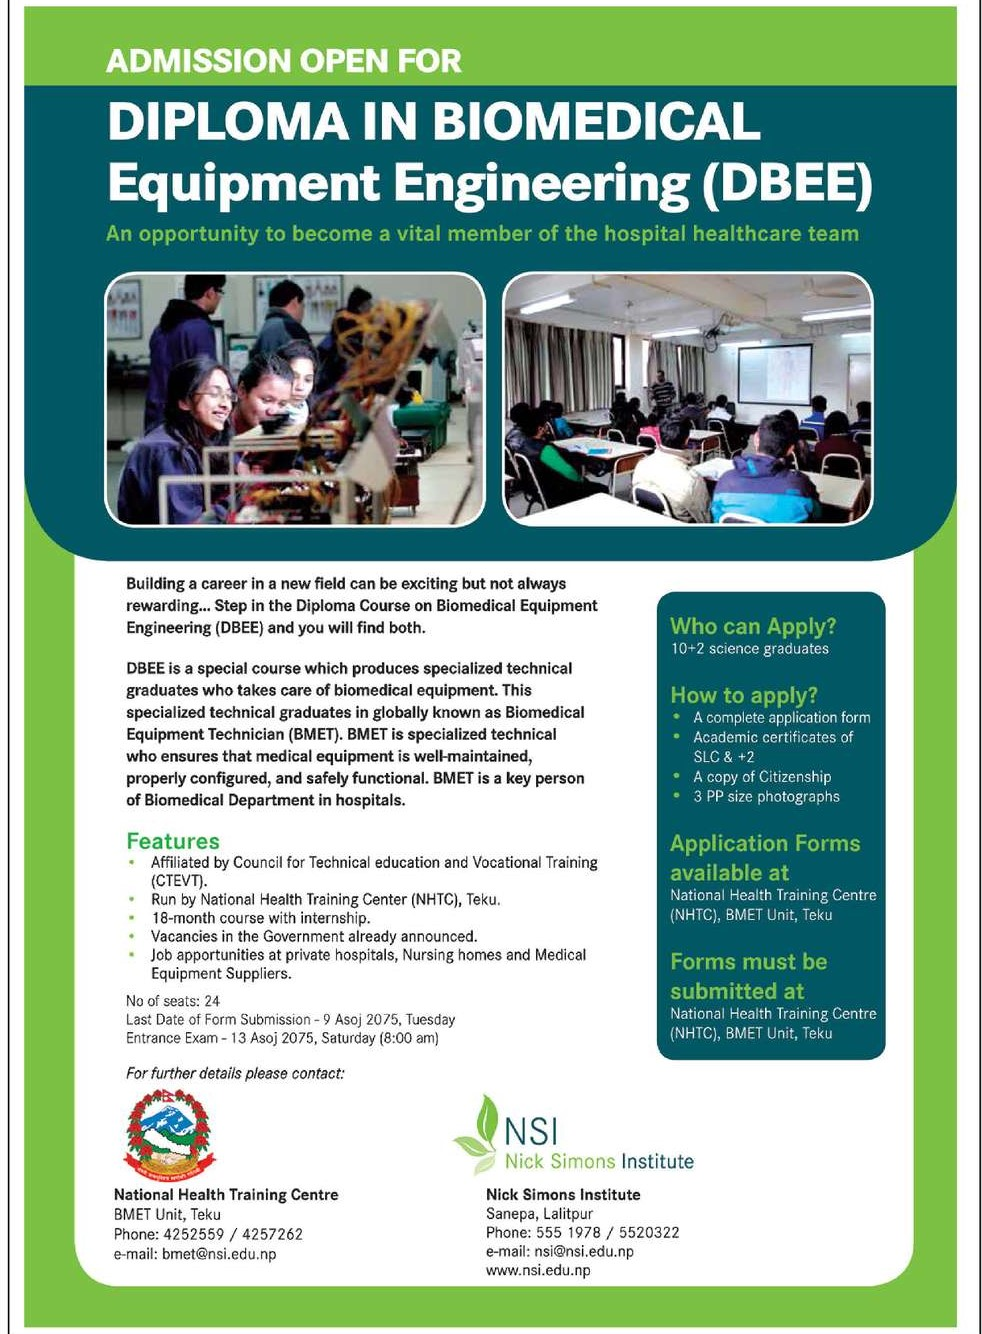 Diploma Course on Biomedical Equipment Engineering (DBEE)